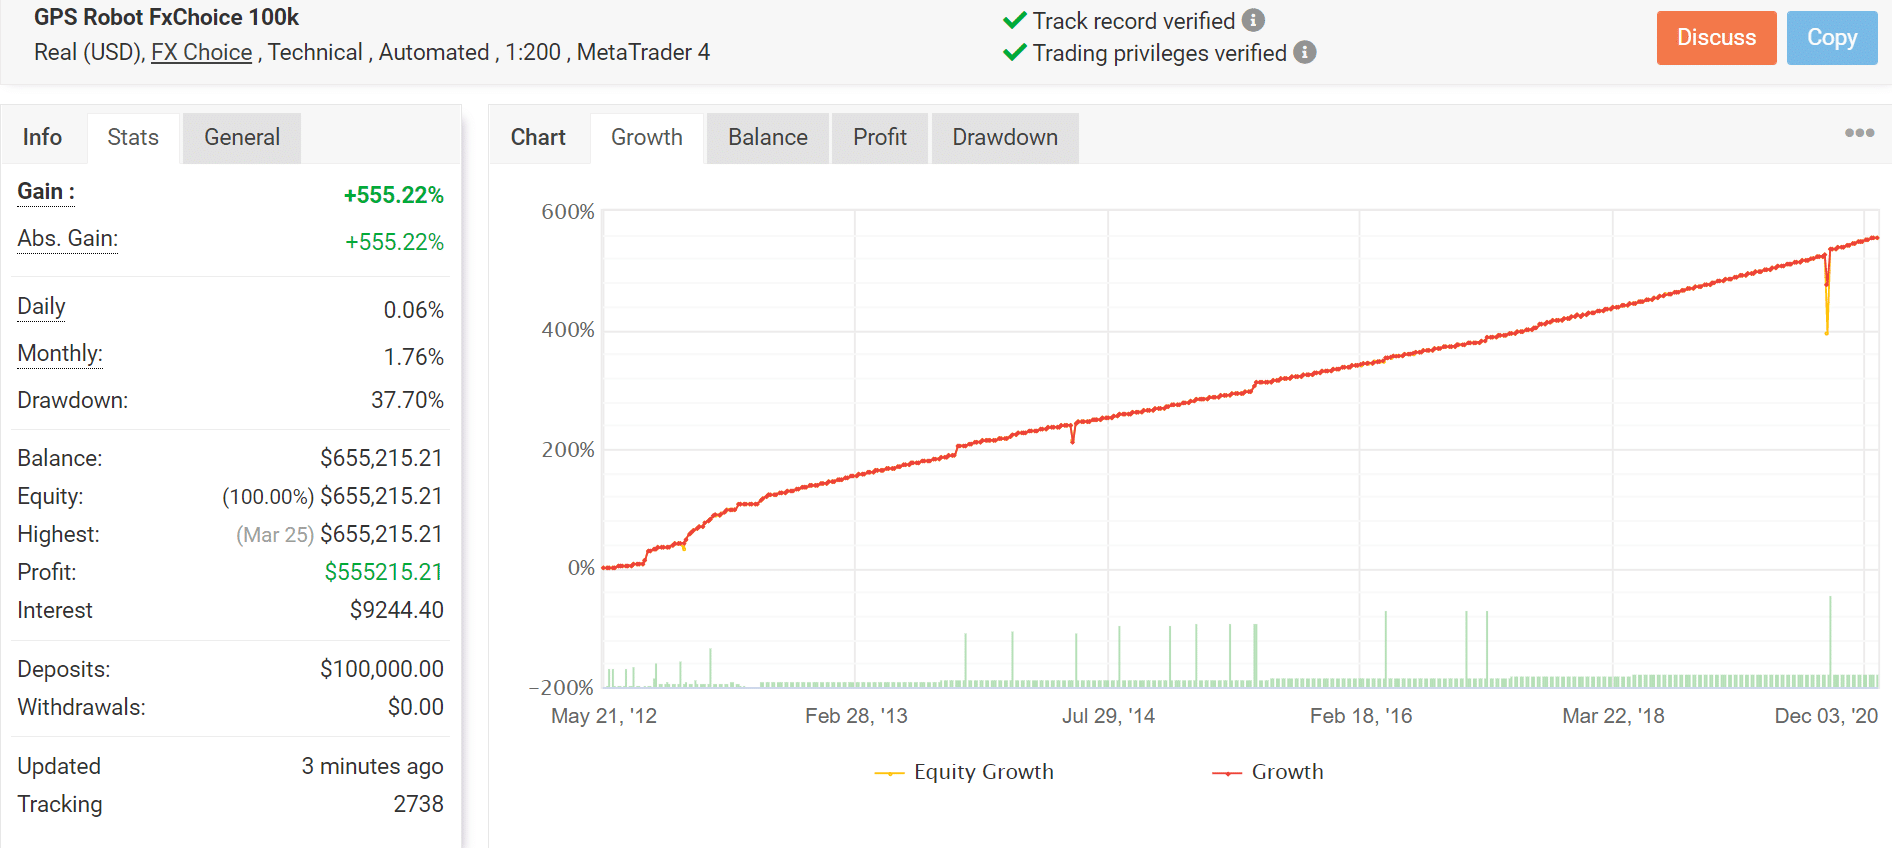 GPS Forex Robot Verified Trading Results